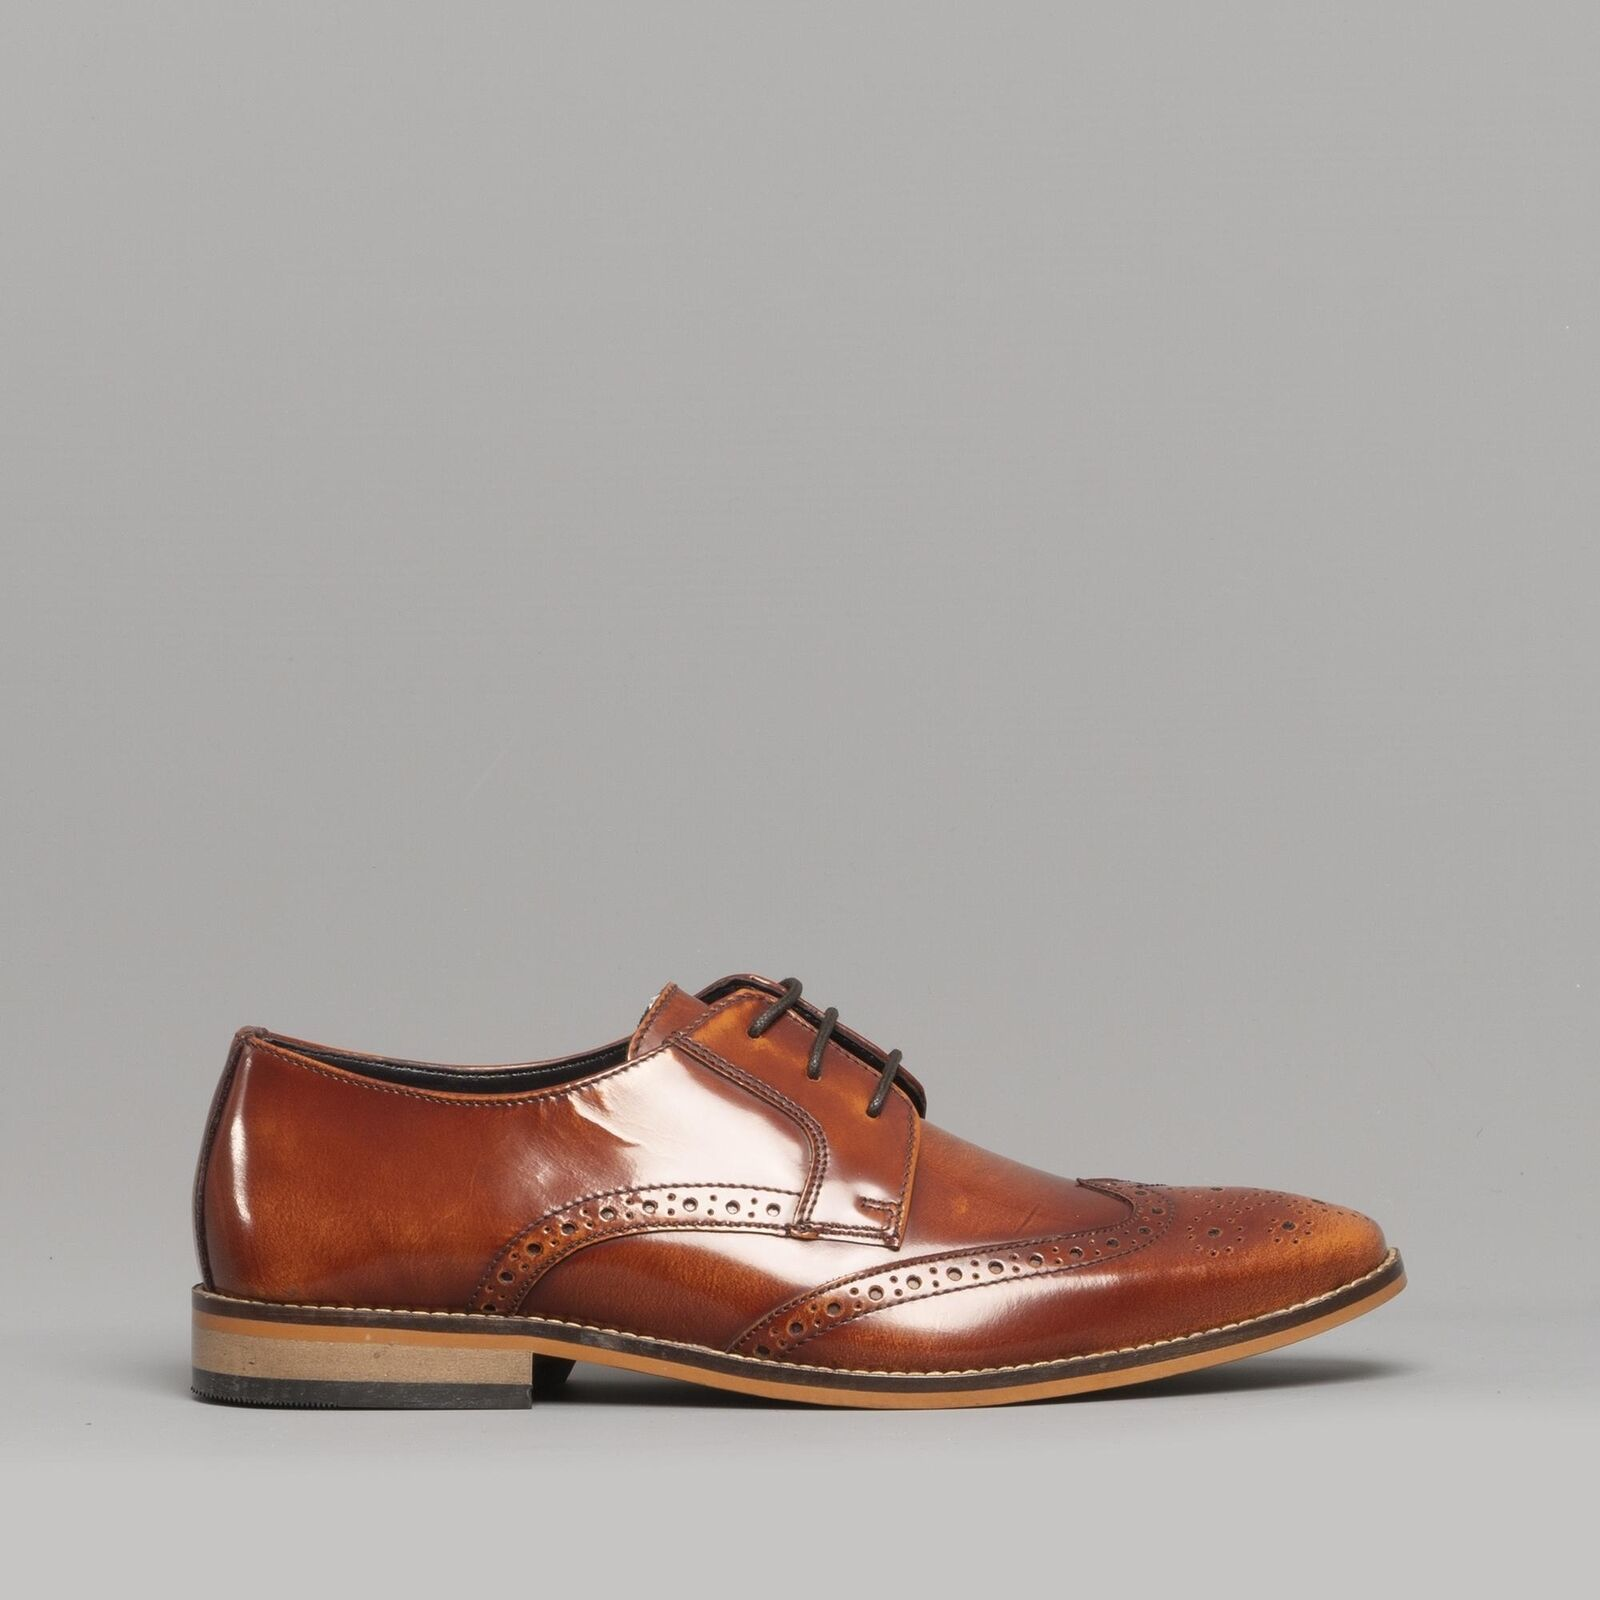 Ikon RAMSAY Mens Leather Brogue Burnished Formal Evening Smart Dress schuhe Tan